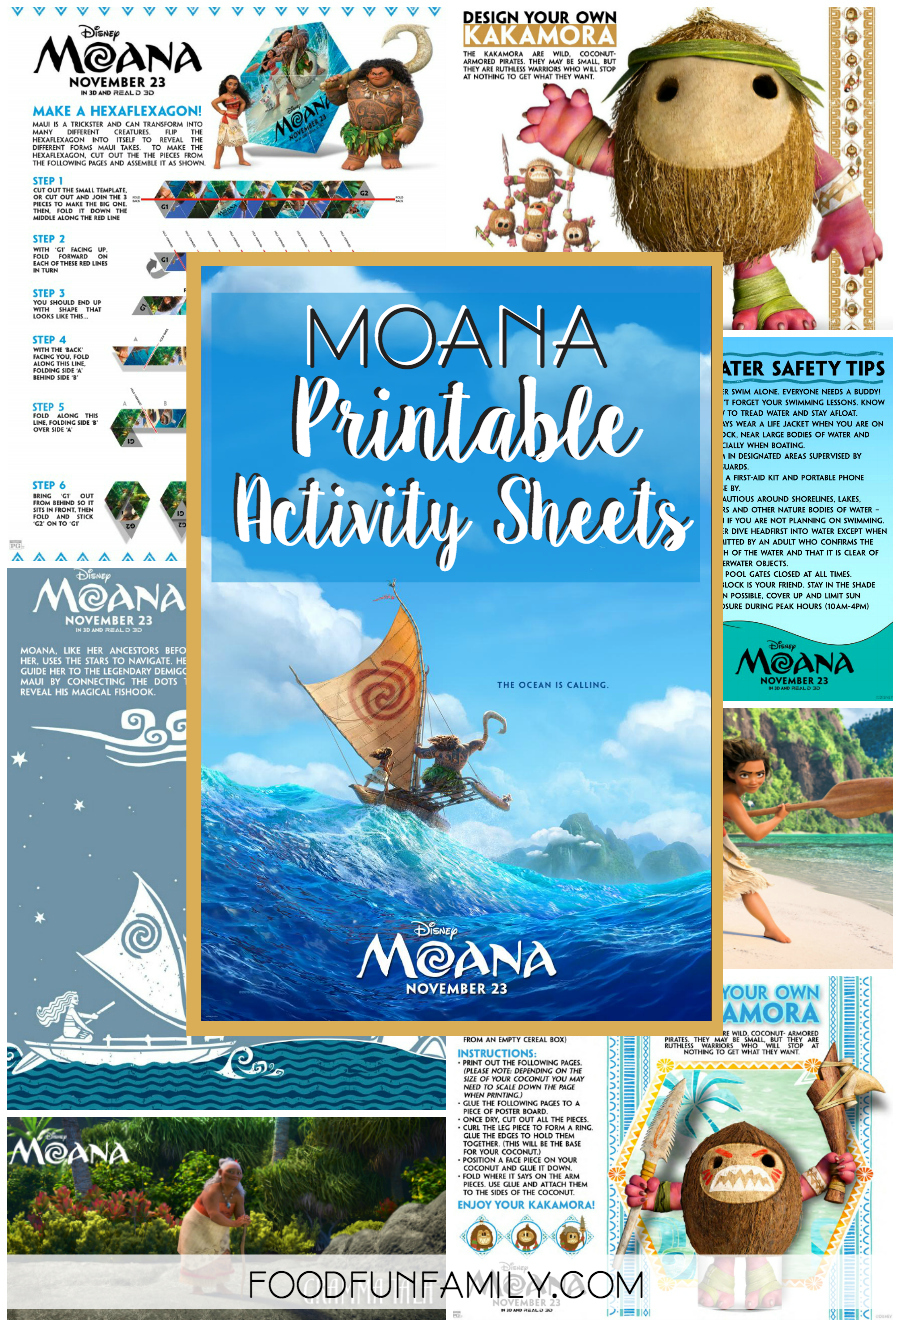 Moana printable activity sheets from Food Fun Family